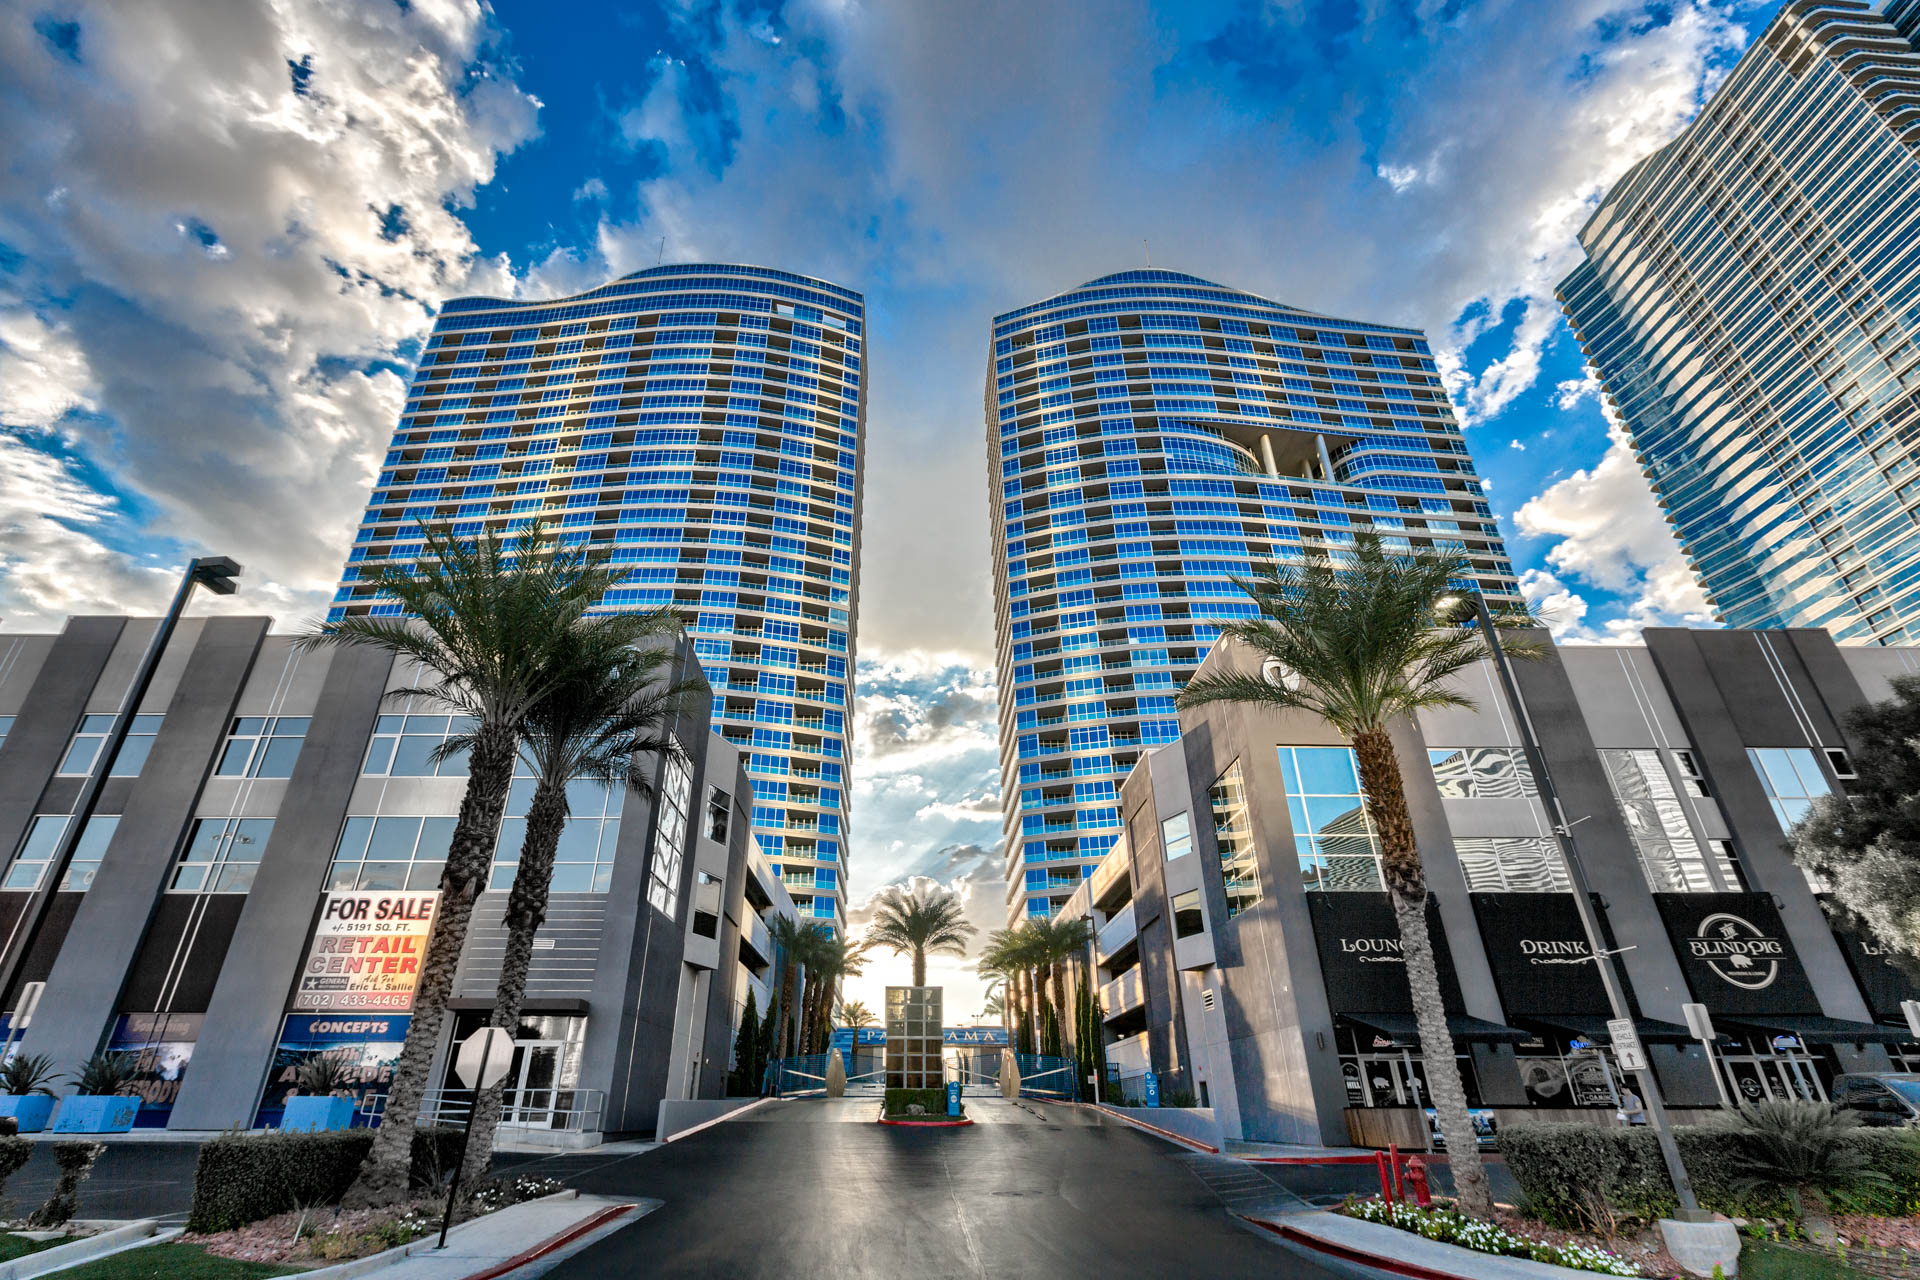 Panorama-Towers-Condos-For-Sale-Las-Vegas